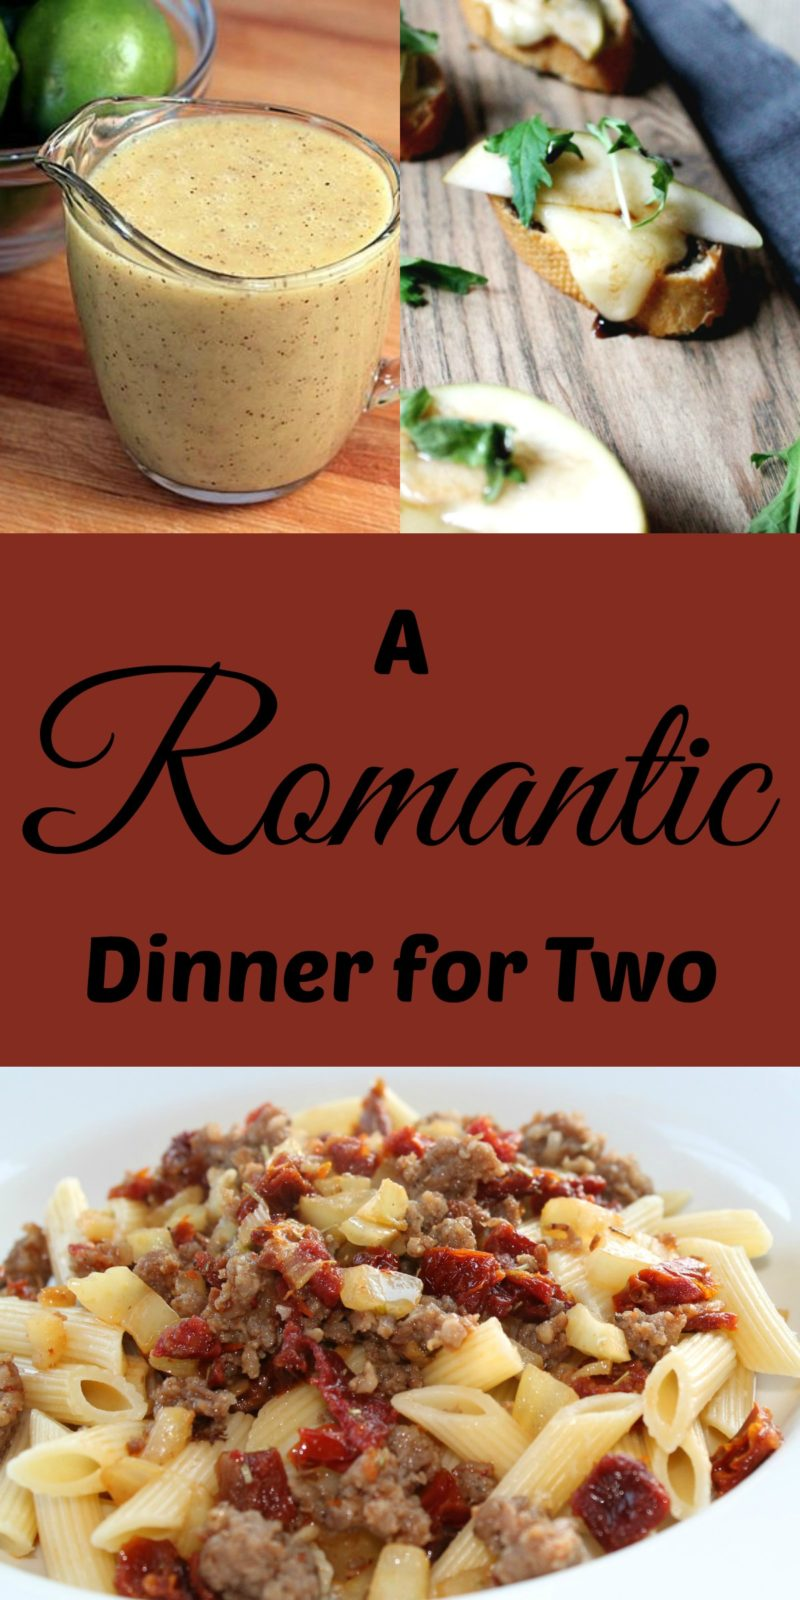 Romantic Dinner For Two Recipes: A Romantic Dinner For Two